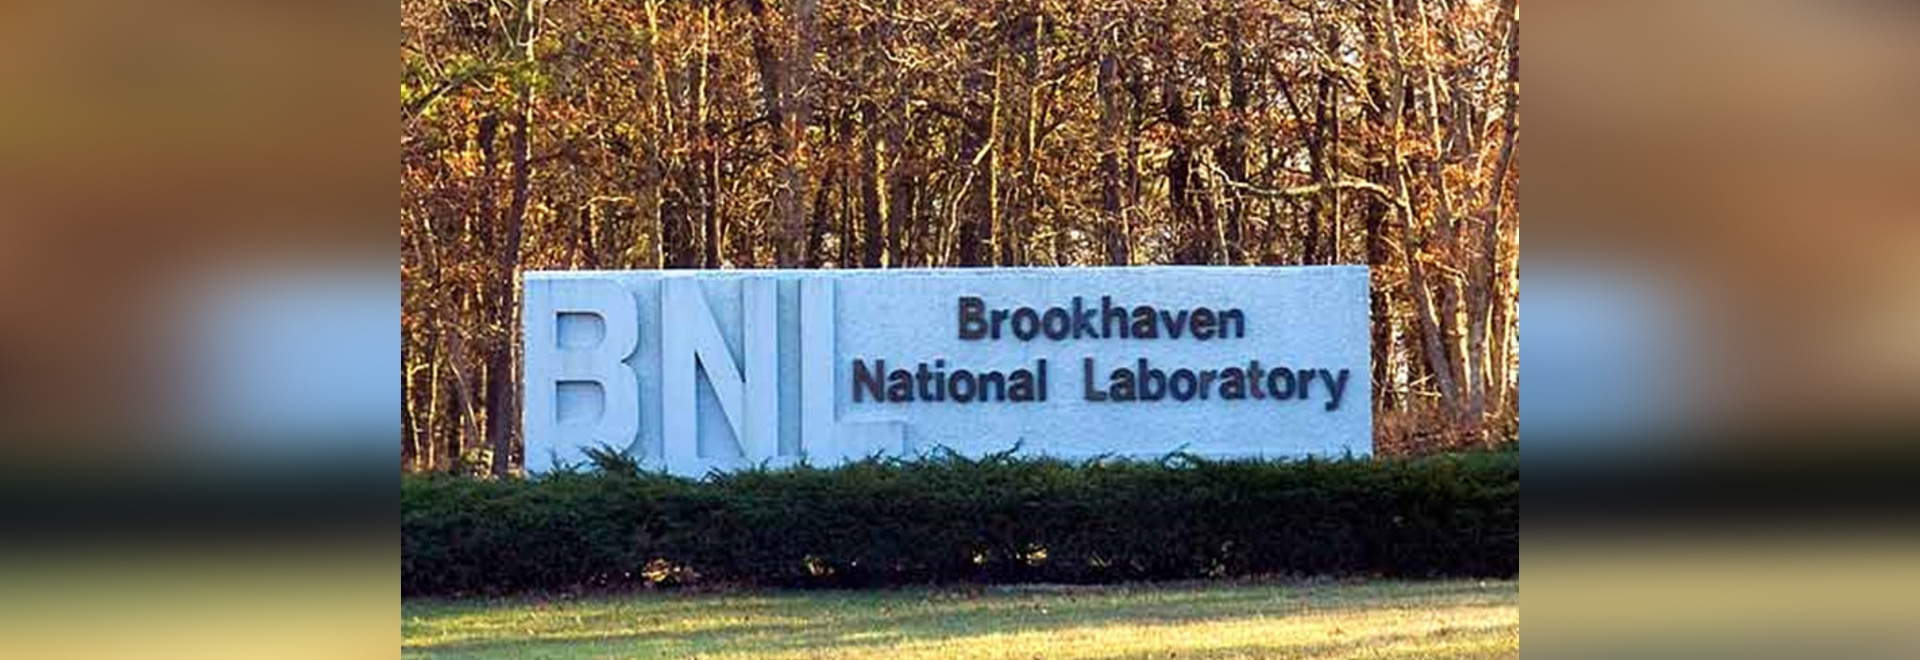 JR very pleased to announce that JR telephone booth JR-TH-01 is going to install into Brookhaven National Laboratory in Upton, NY USA